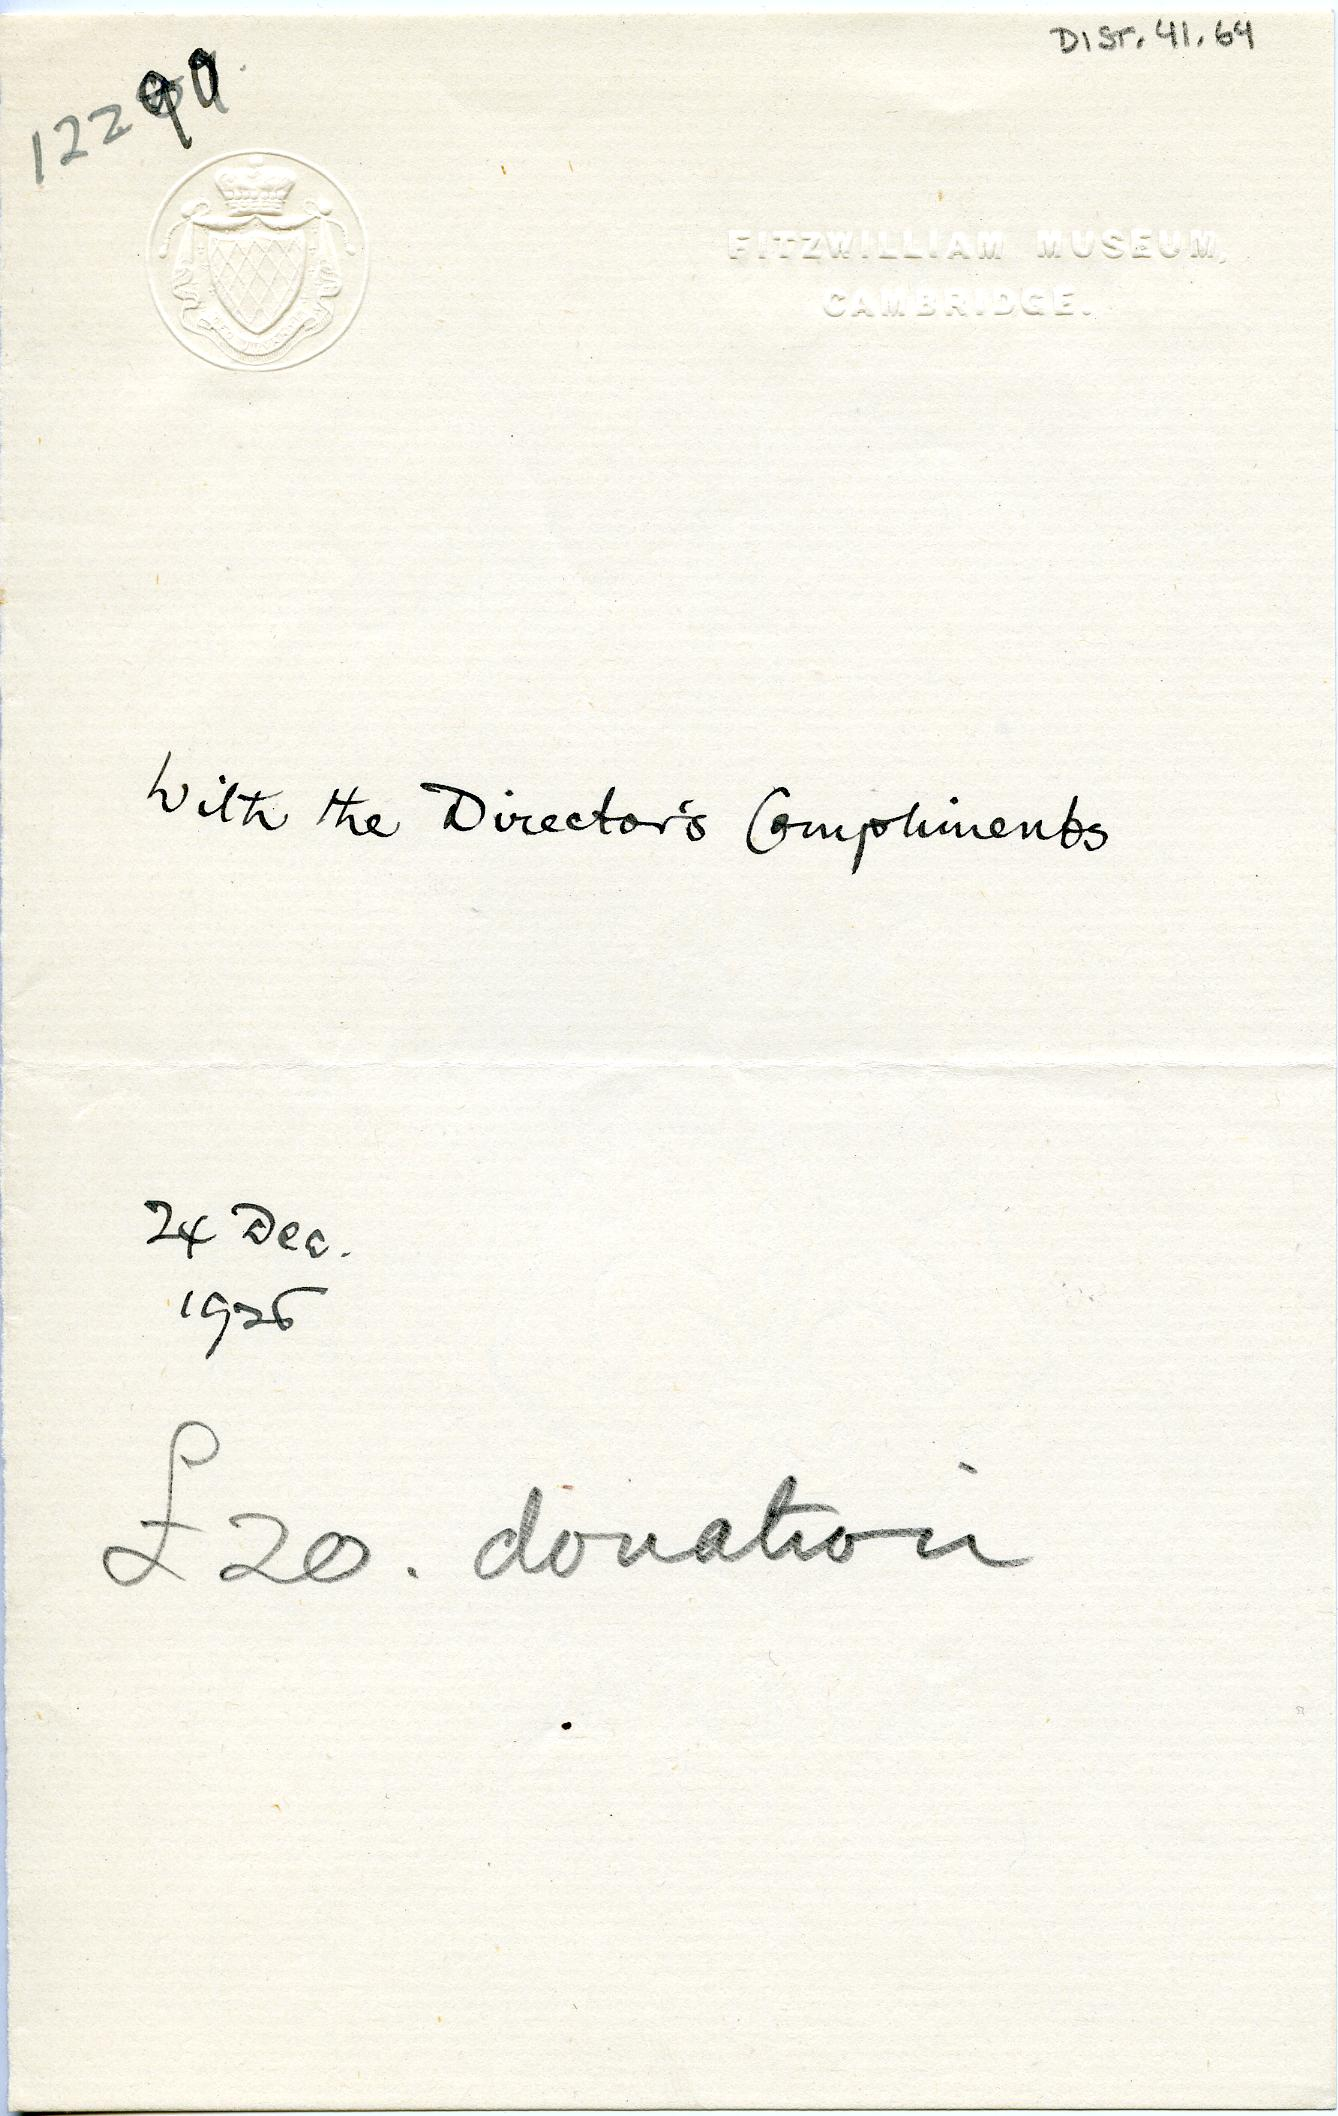 1922-76 Miscellaneous correspondence with museums DIST.41.64